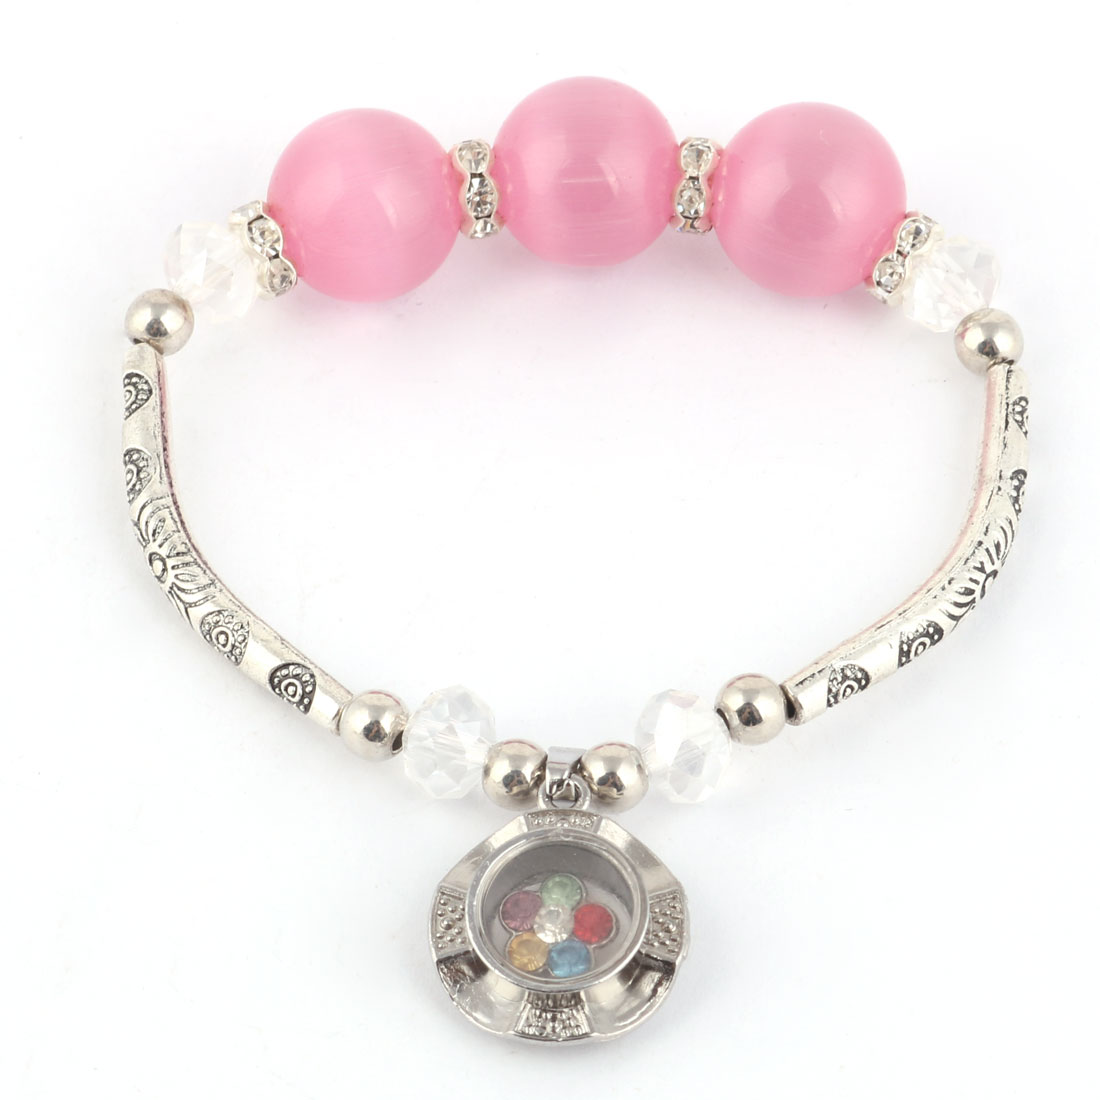 Lady Rhinestone Decor Pendant Bracelet Beads Wrist Chain Bangle Silver Tone Pink